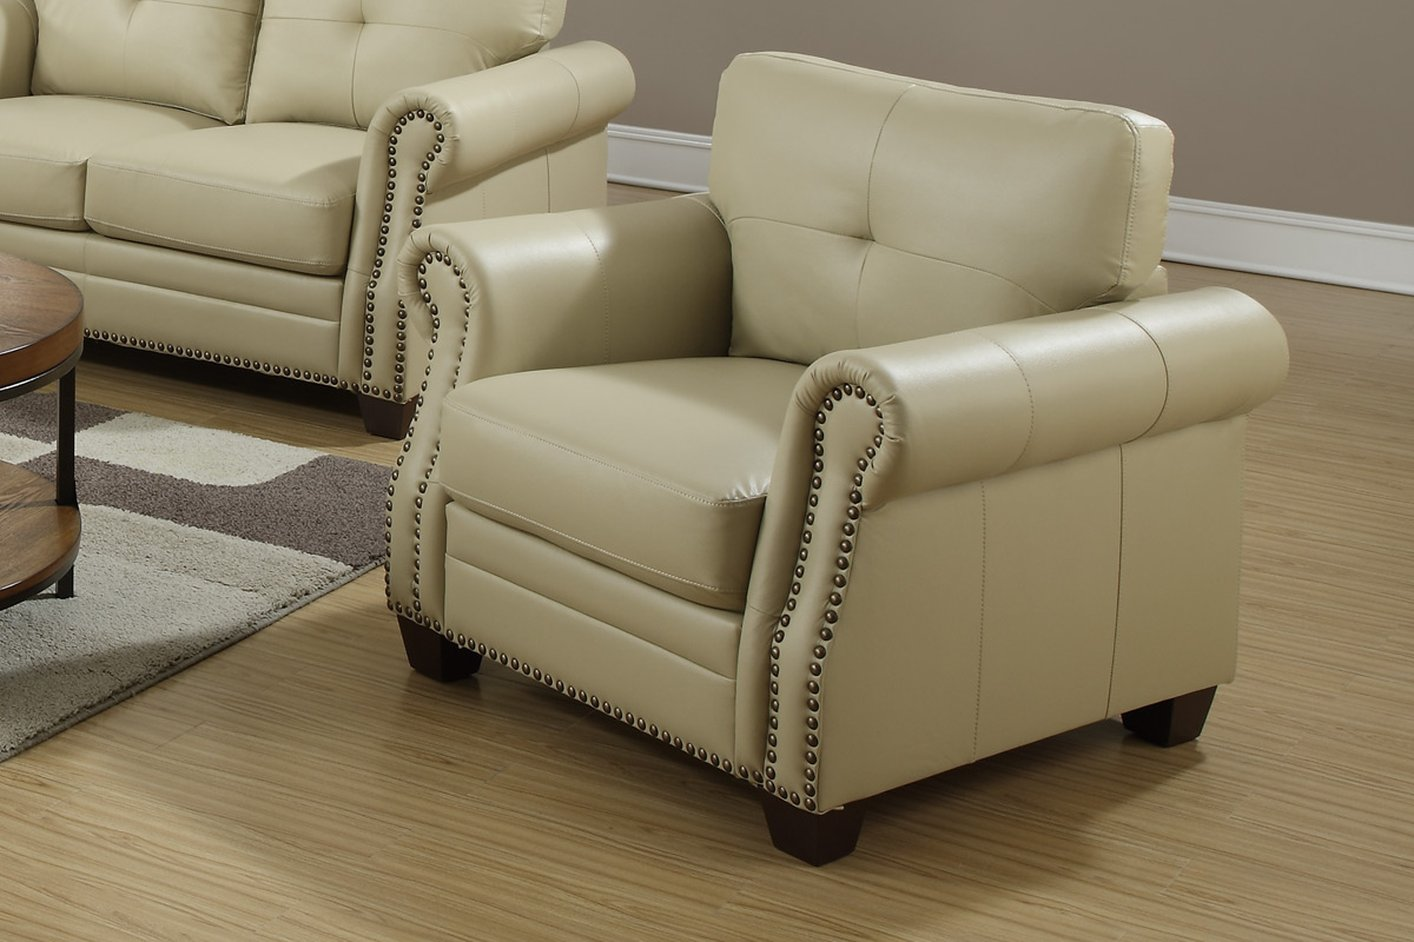 beige leather dining chairs cushions for office desk chair steal a sofa furniture outlet los